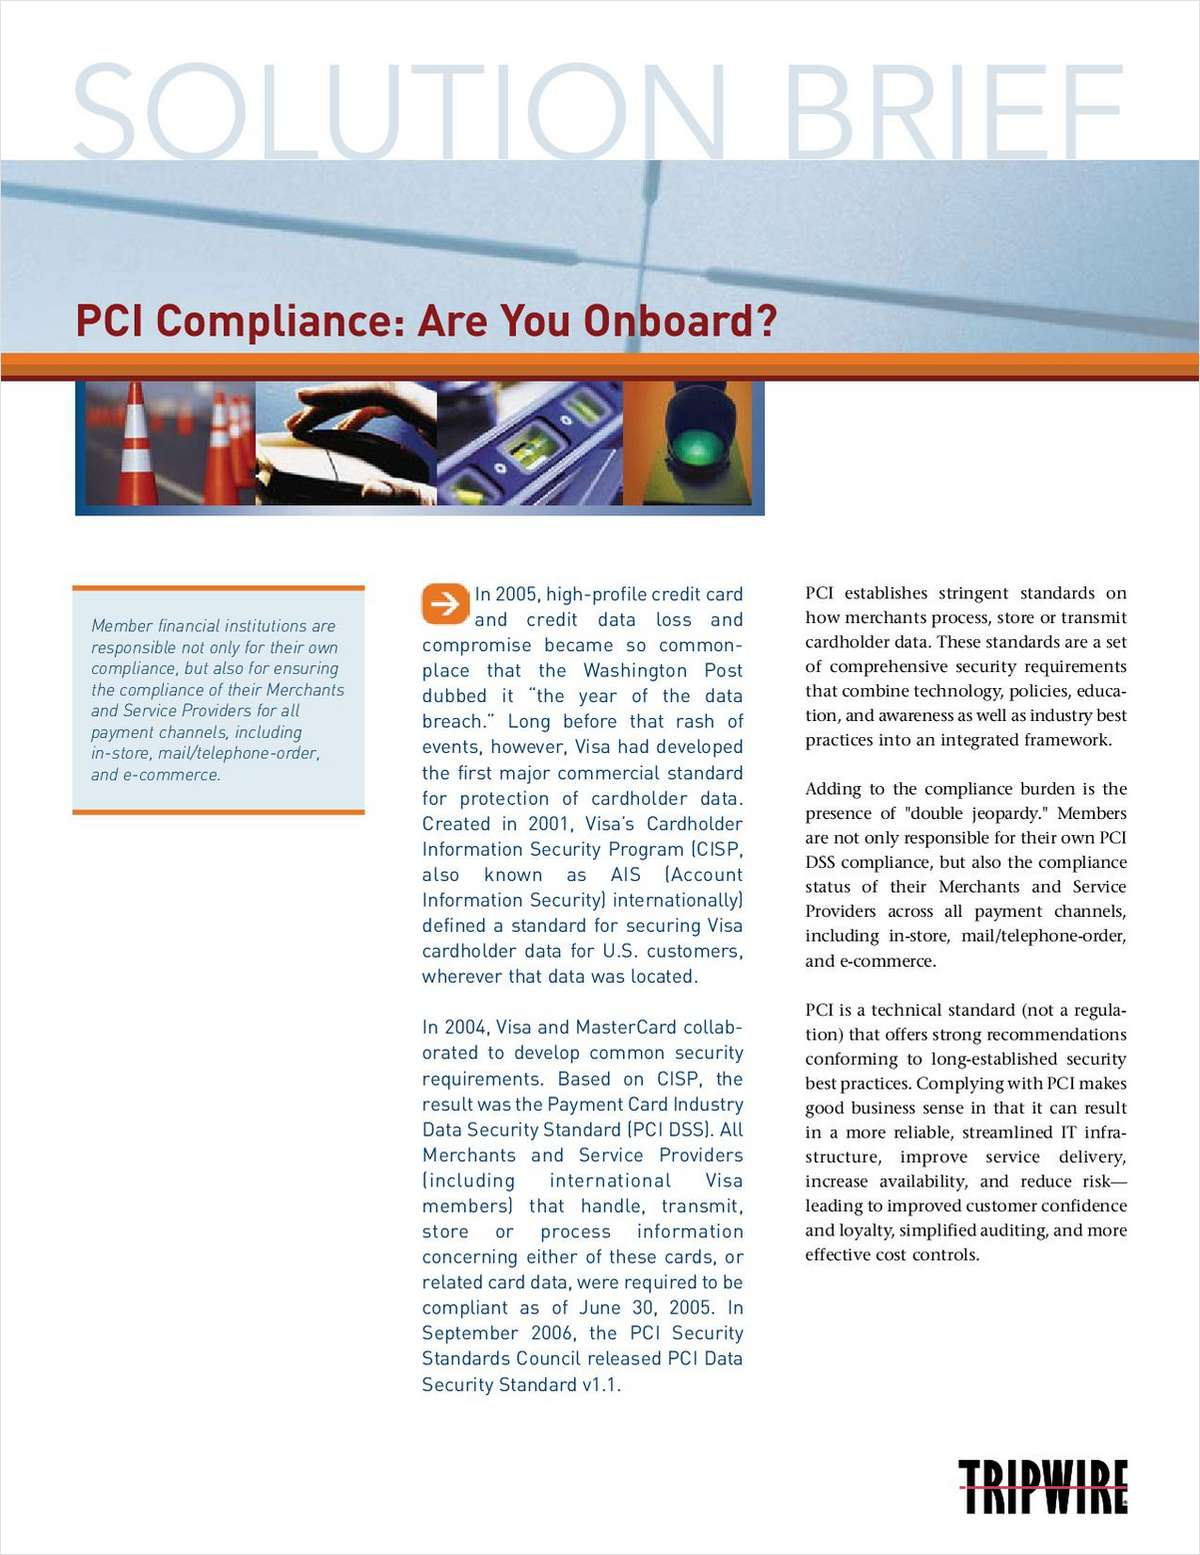 PCI Compliance: Are You Onboard?